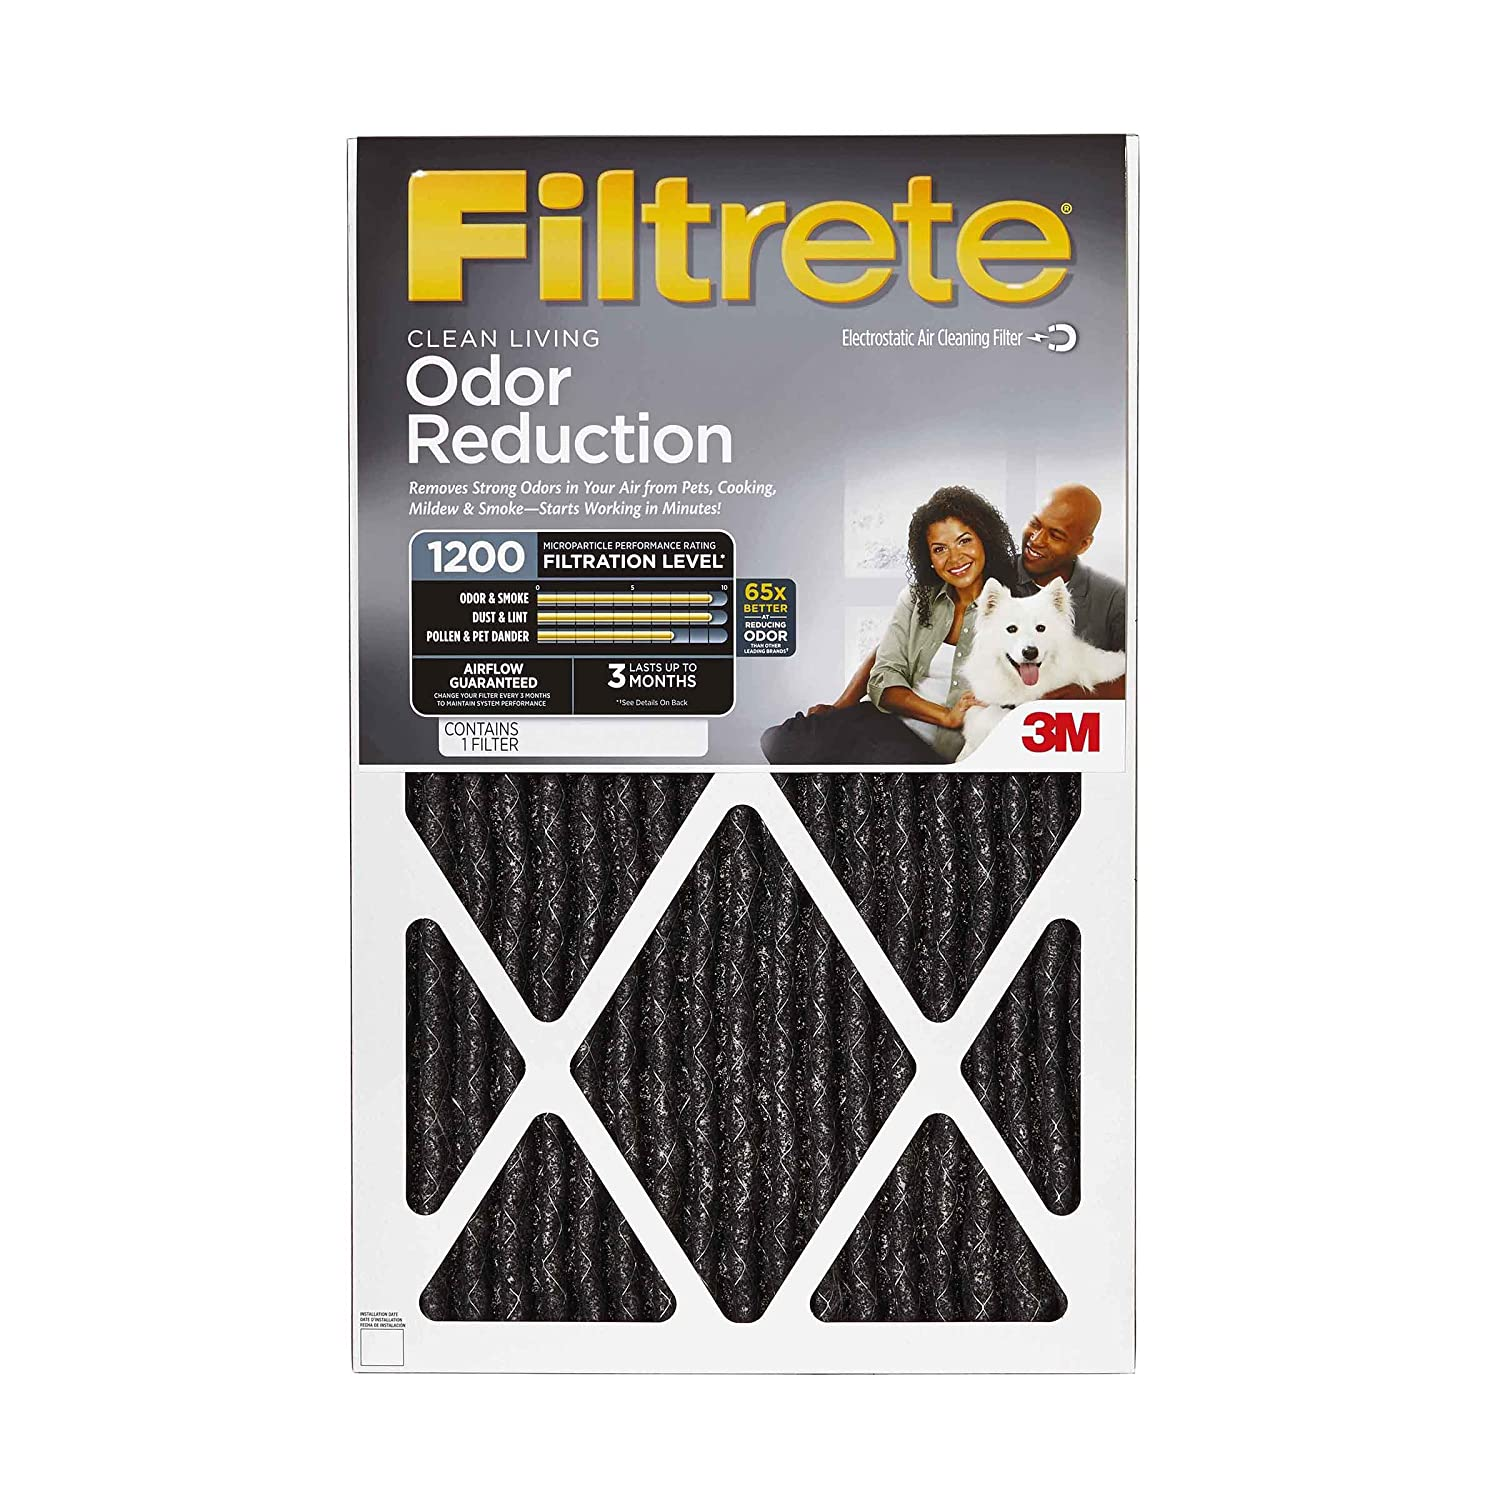 Filtrete Allergen Defense Odor Reduction AC Furnace Air Filter, MPR 1200, 20 x 30 x 1-Inches, 2-Pack AOR22-2PK-6E